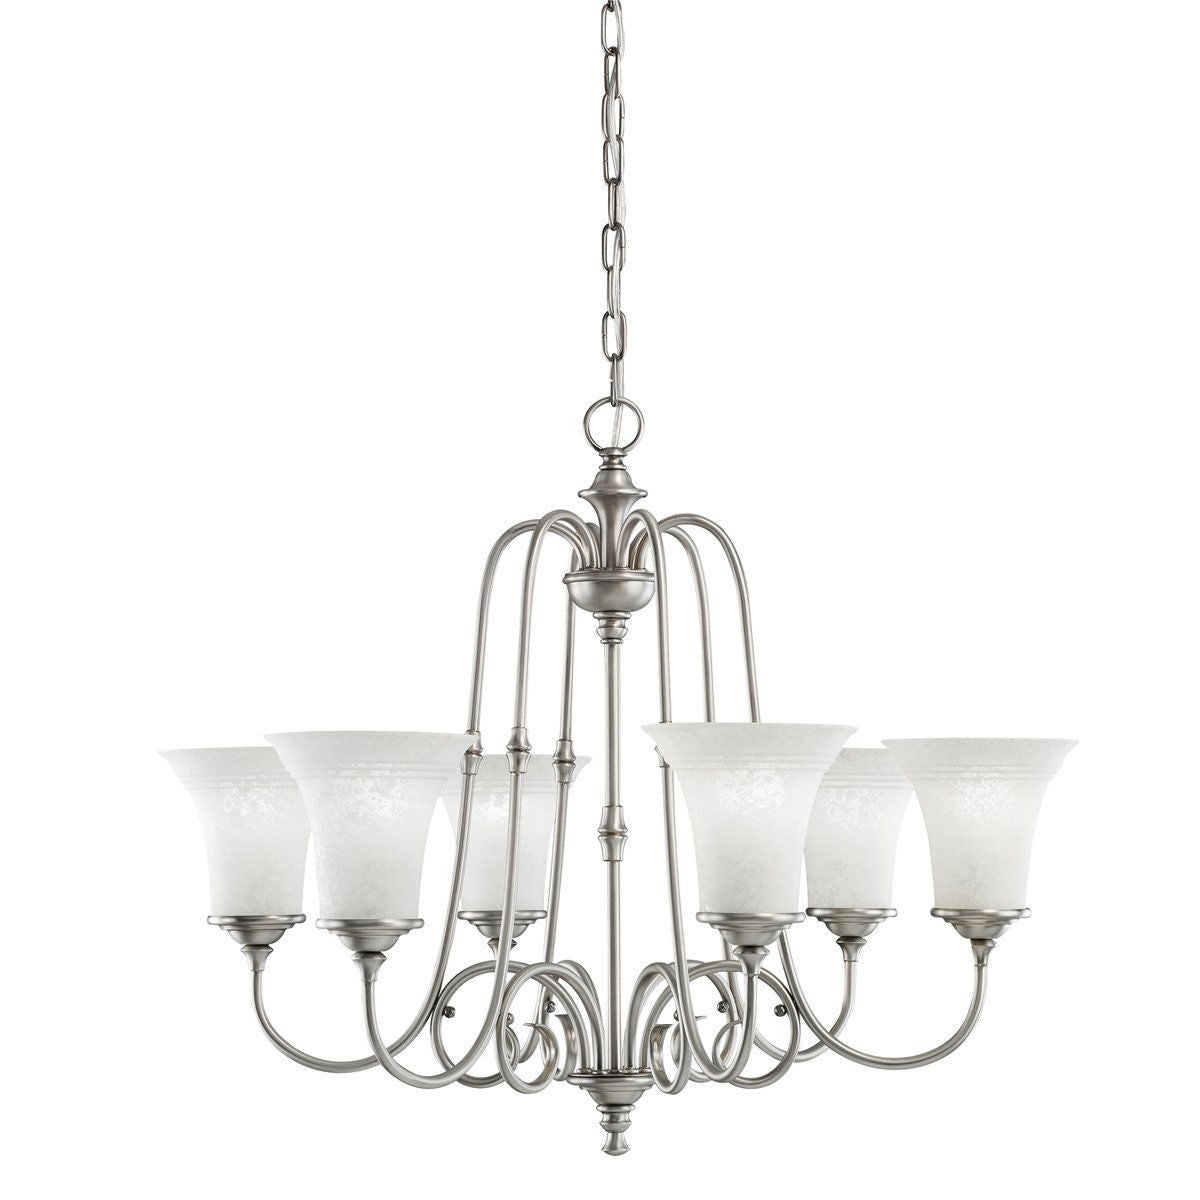 Aztec by Kichler Lighting 34929 Six Light Northampton Collection Hanging  Chandelier in Antique Pewter Finish - - Aztec By Kichler Lighting 34929 Six Light Northampton Collection